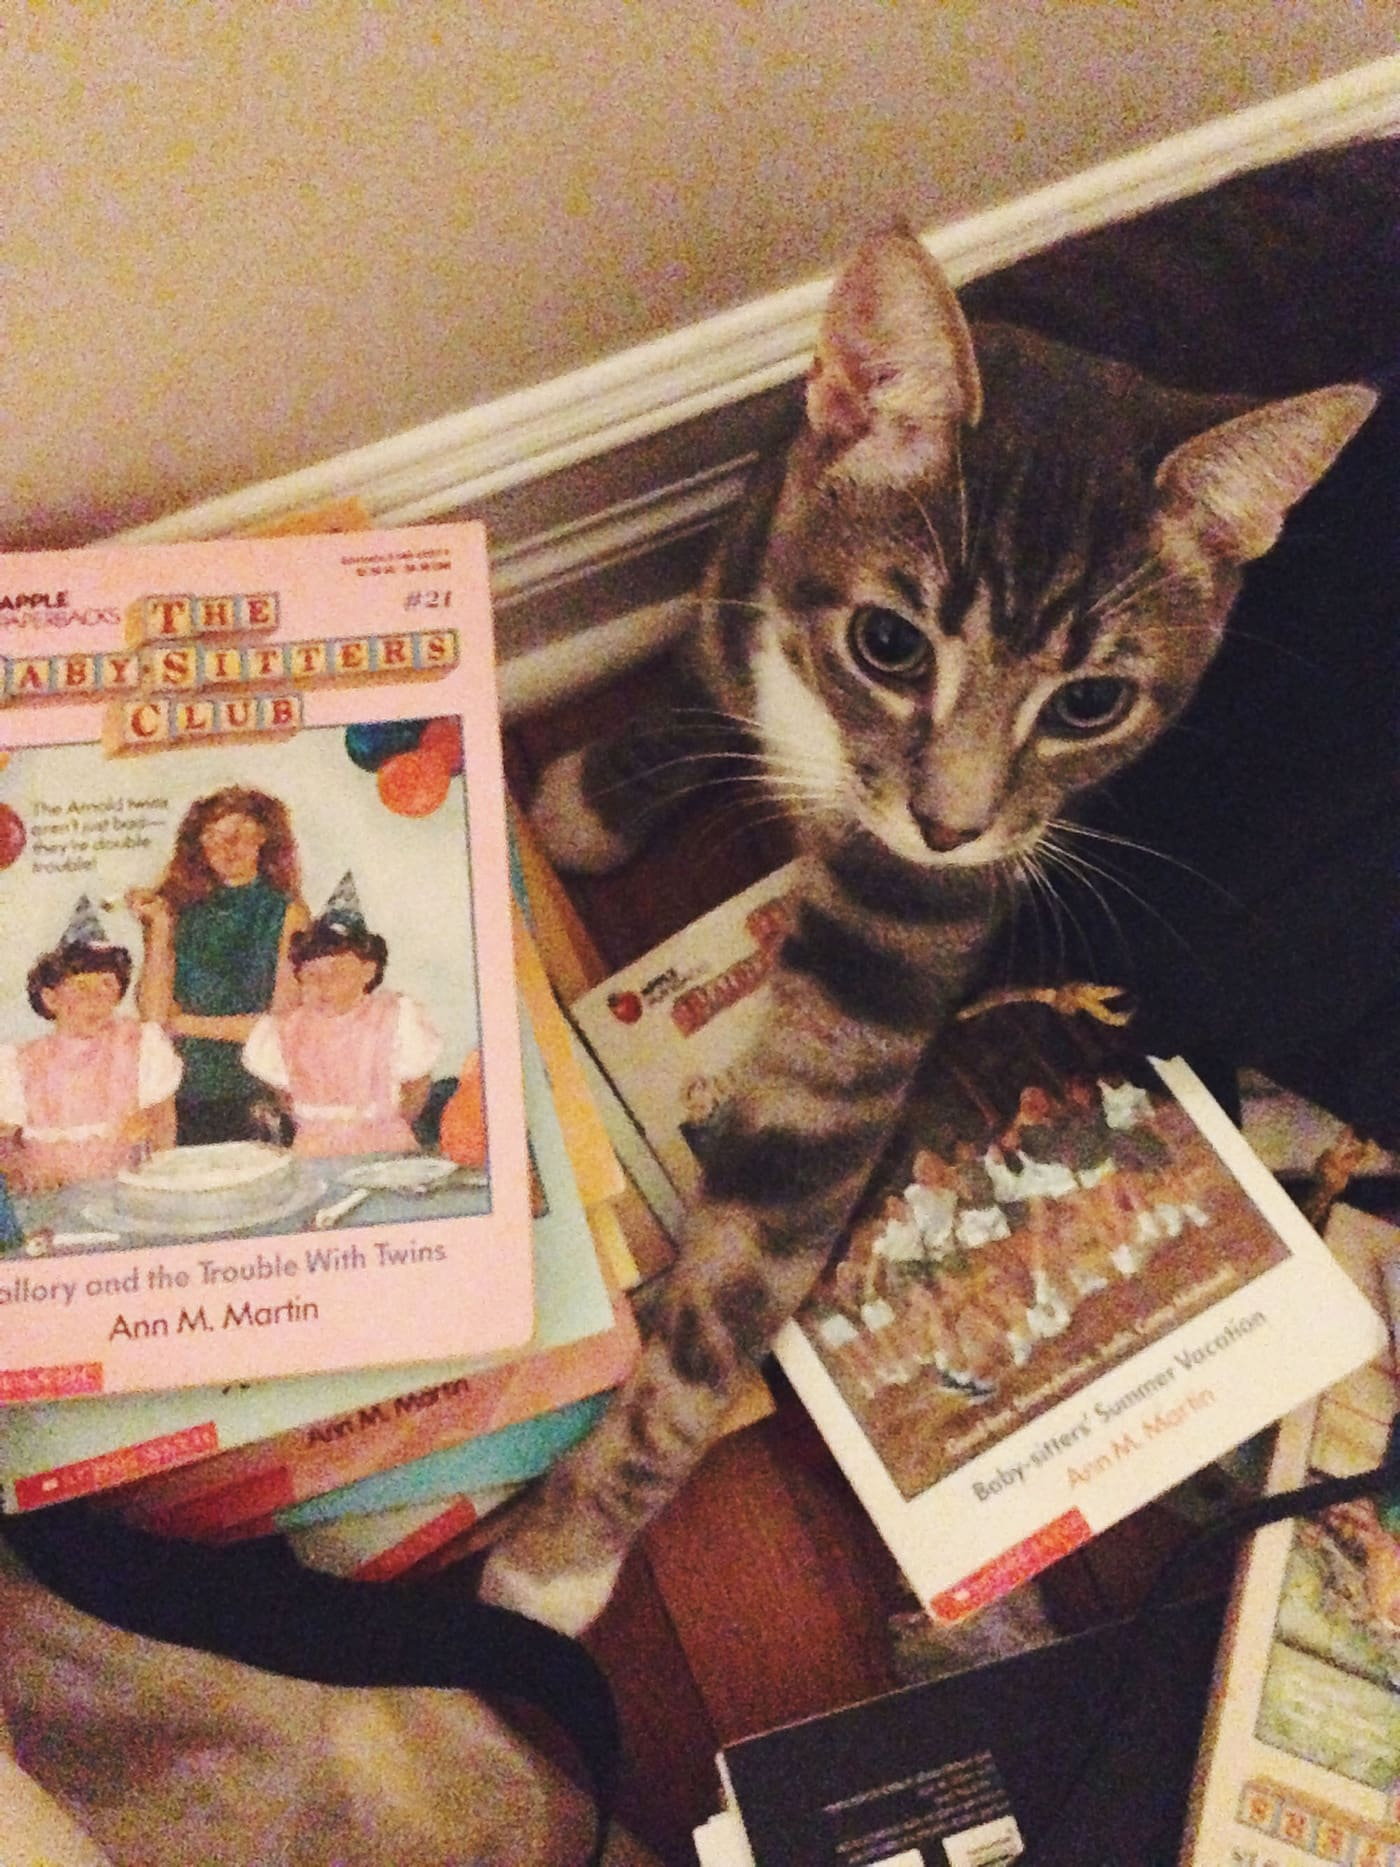 The cat is helping me read all the Baby-Sitters Club Books